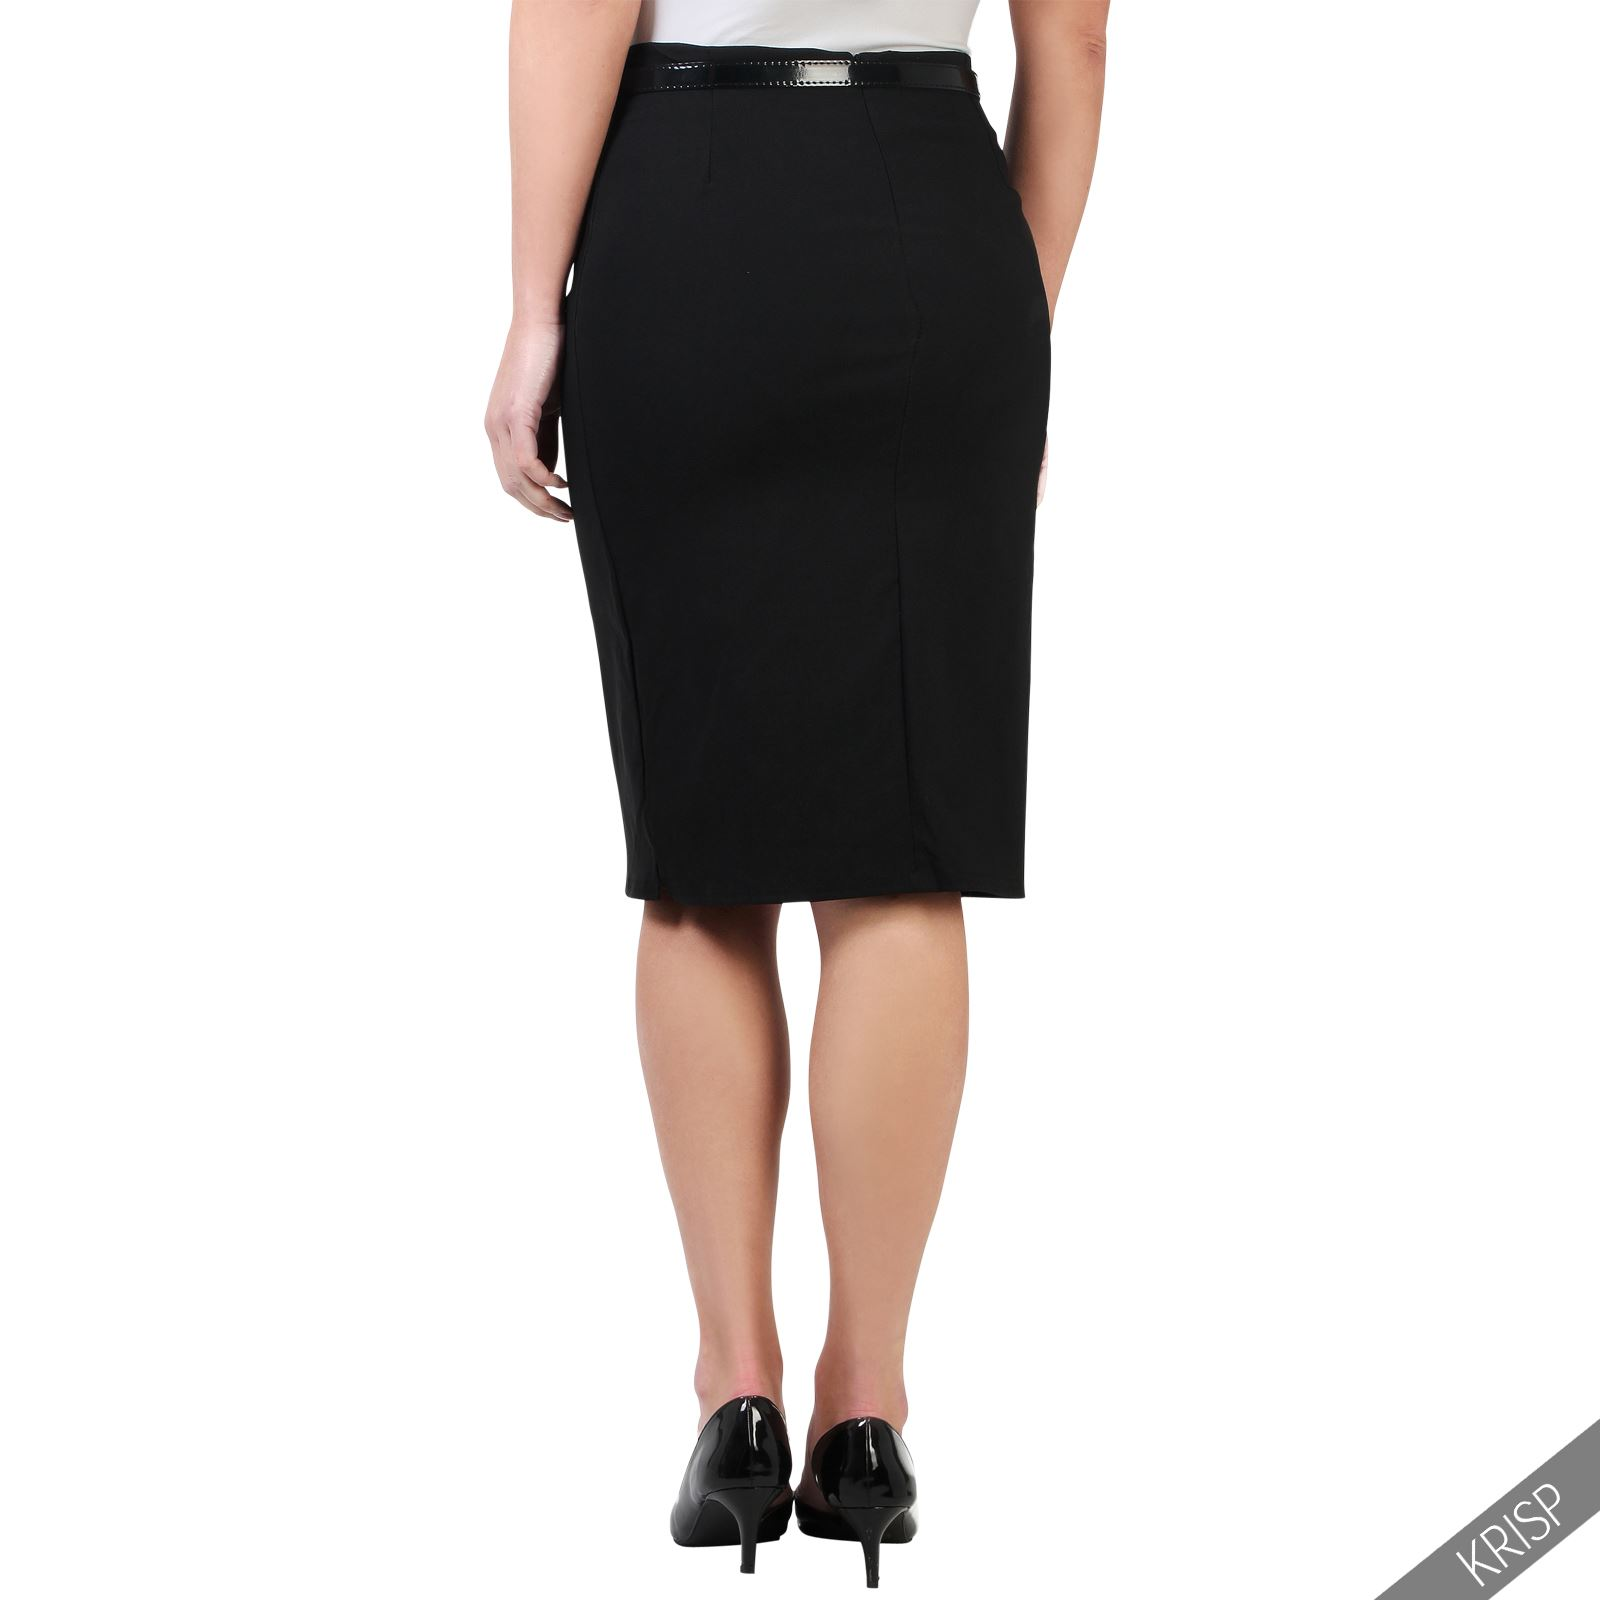 Womens-Ladies-Pencil-Midi-Skirt-Stretch-Fitted-Belt-Bodycon-Office-Work-8-20 thumbnail 5